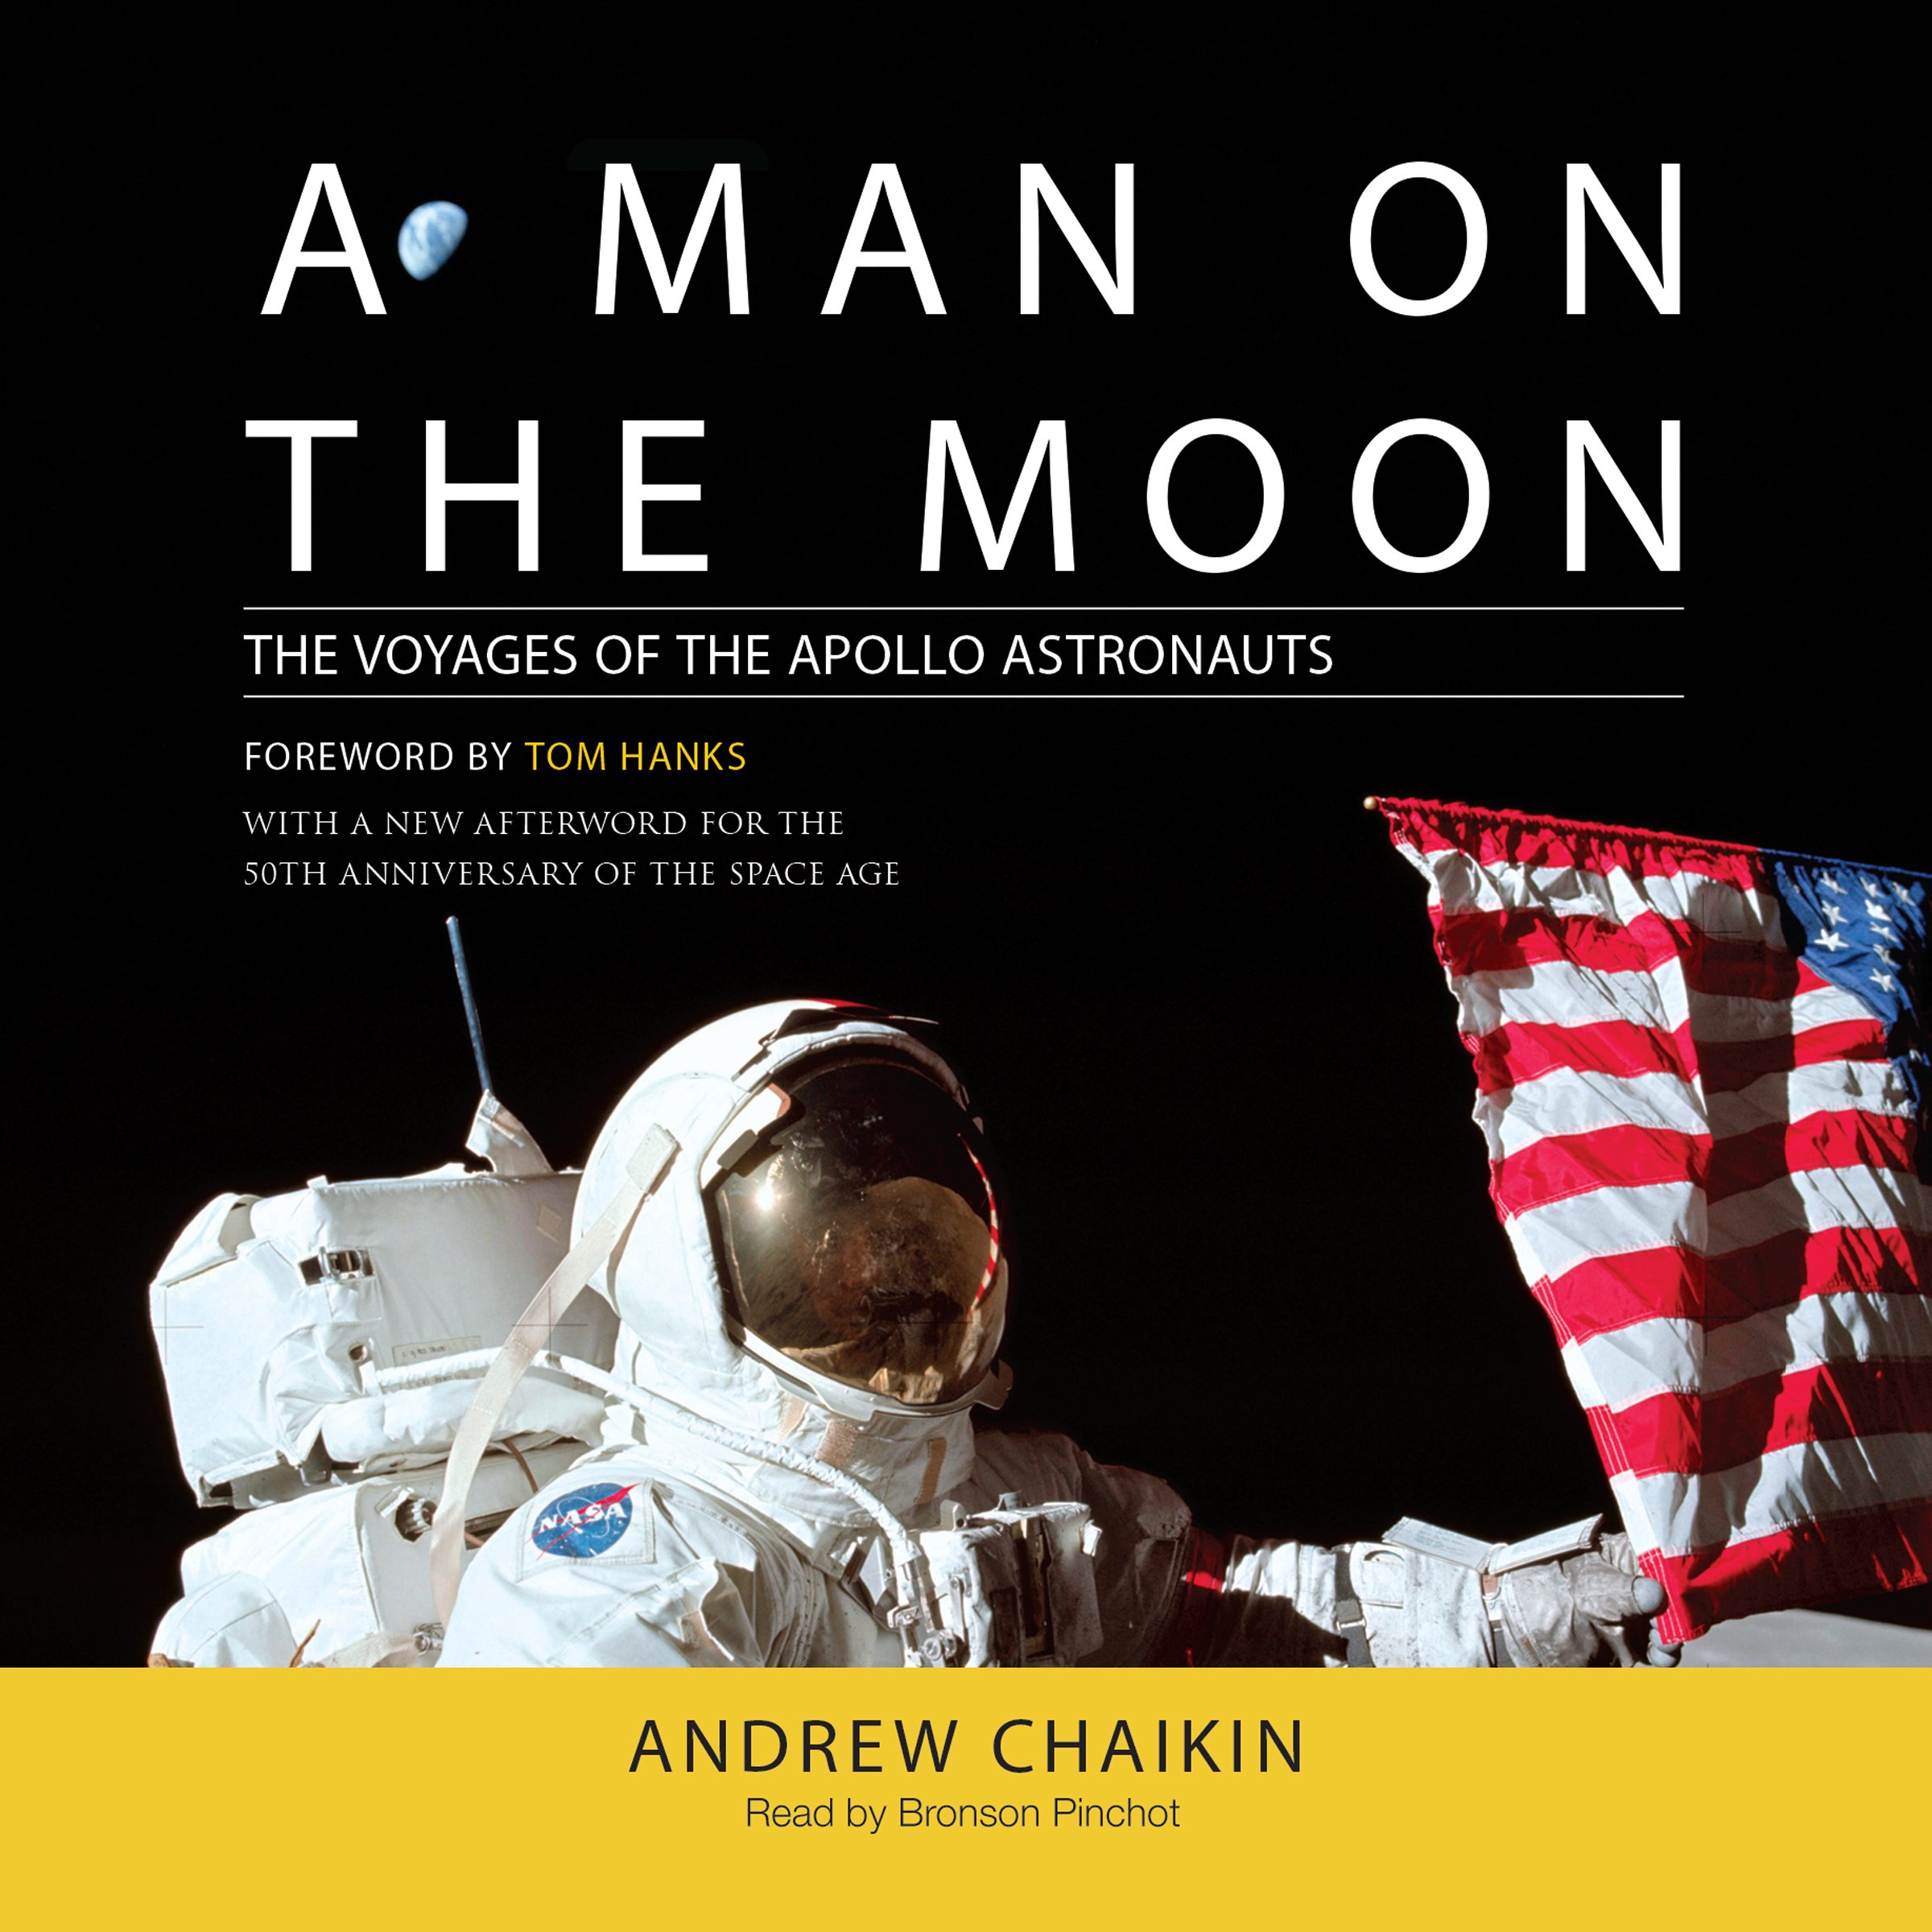 The Voyages of the Apollo Astronauts - Andrew Chaikin, Tom Hanks (Introduction)